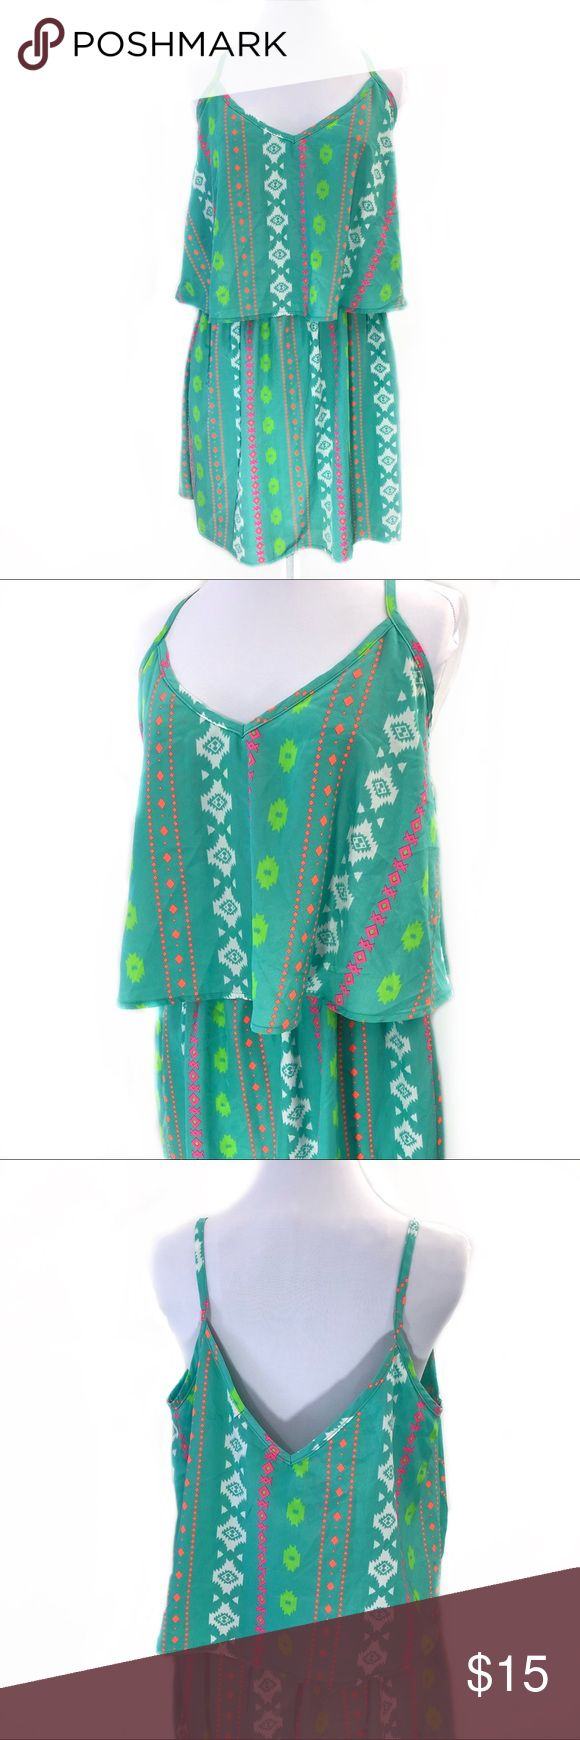 Bright Colored Aztec Southwest Flutter Neckline Bright Colored Aztec Southwest Flutter Neckline  Summer dress ready for an evening out after hitting the beach. Bright aqua, pink, orange, green, and white print. Drape flutter neckline, elastic waist. Low, v-back. Light chiffon fabric, opaque. BeBop Dresses